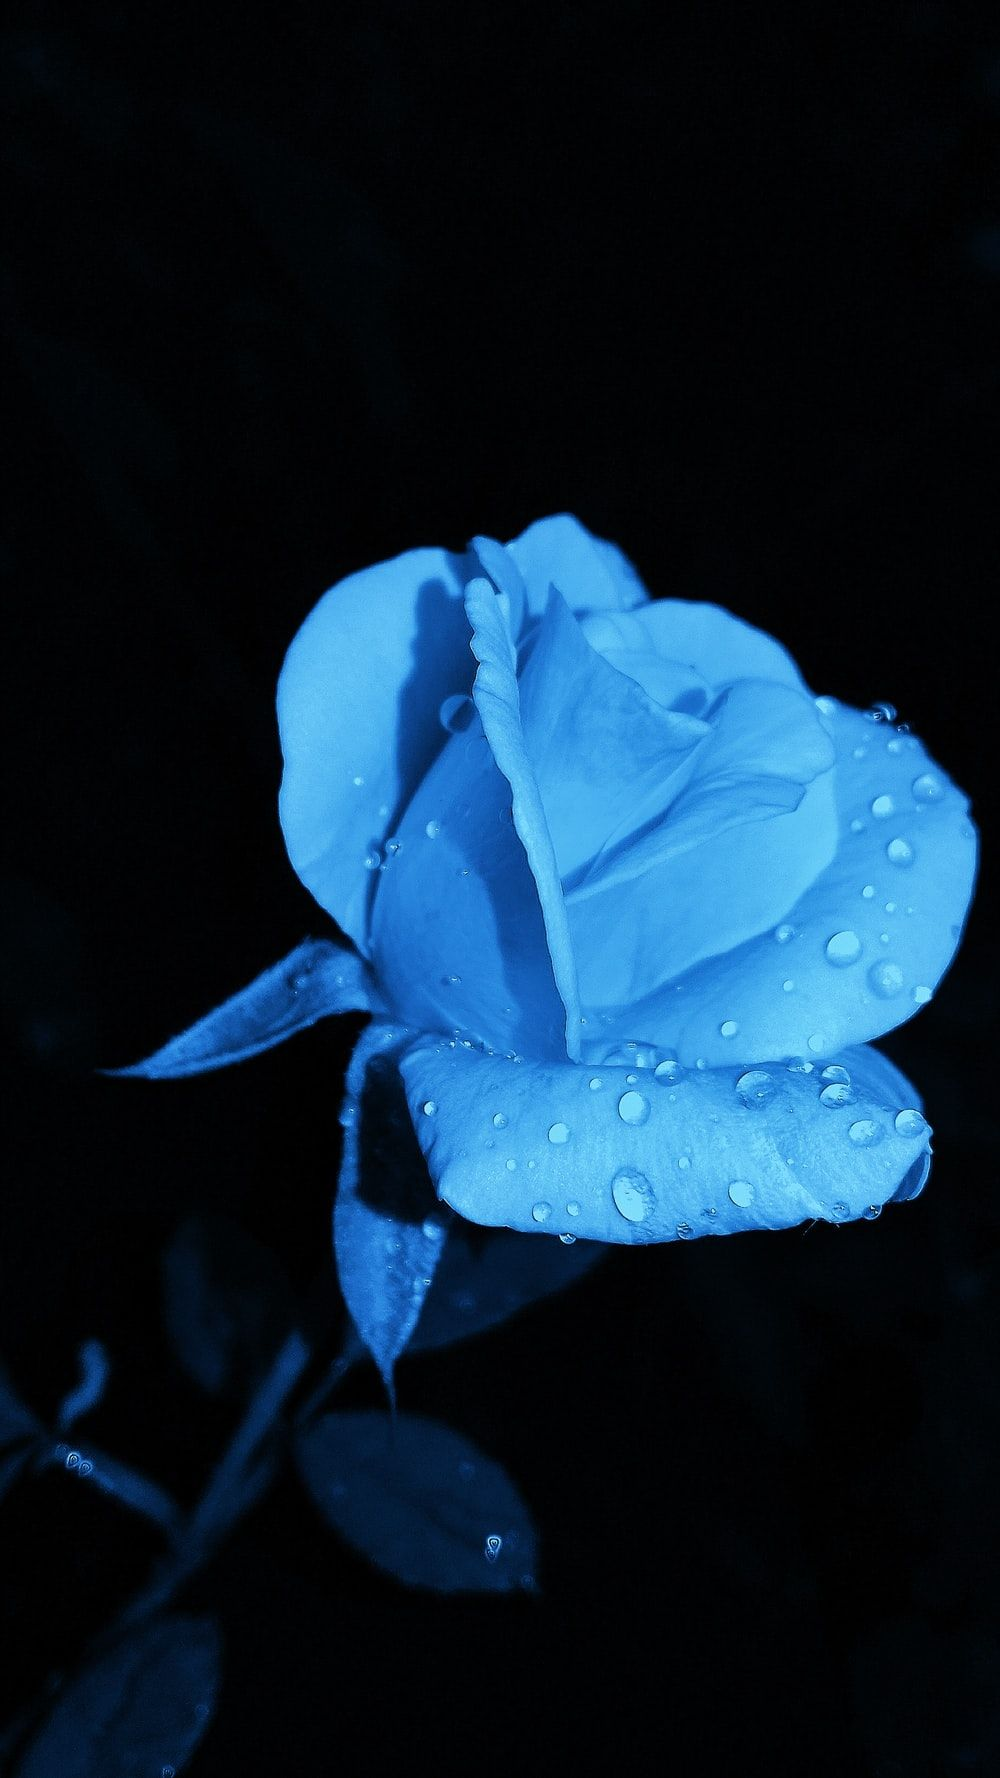 Awesome Flower Images Rose Blue And Description Blue Flower Wallpaper Blue Rose Picture Blue Roses Wallpaper